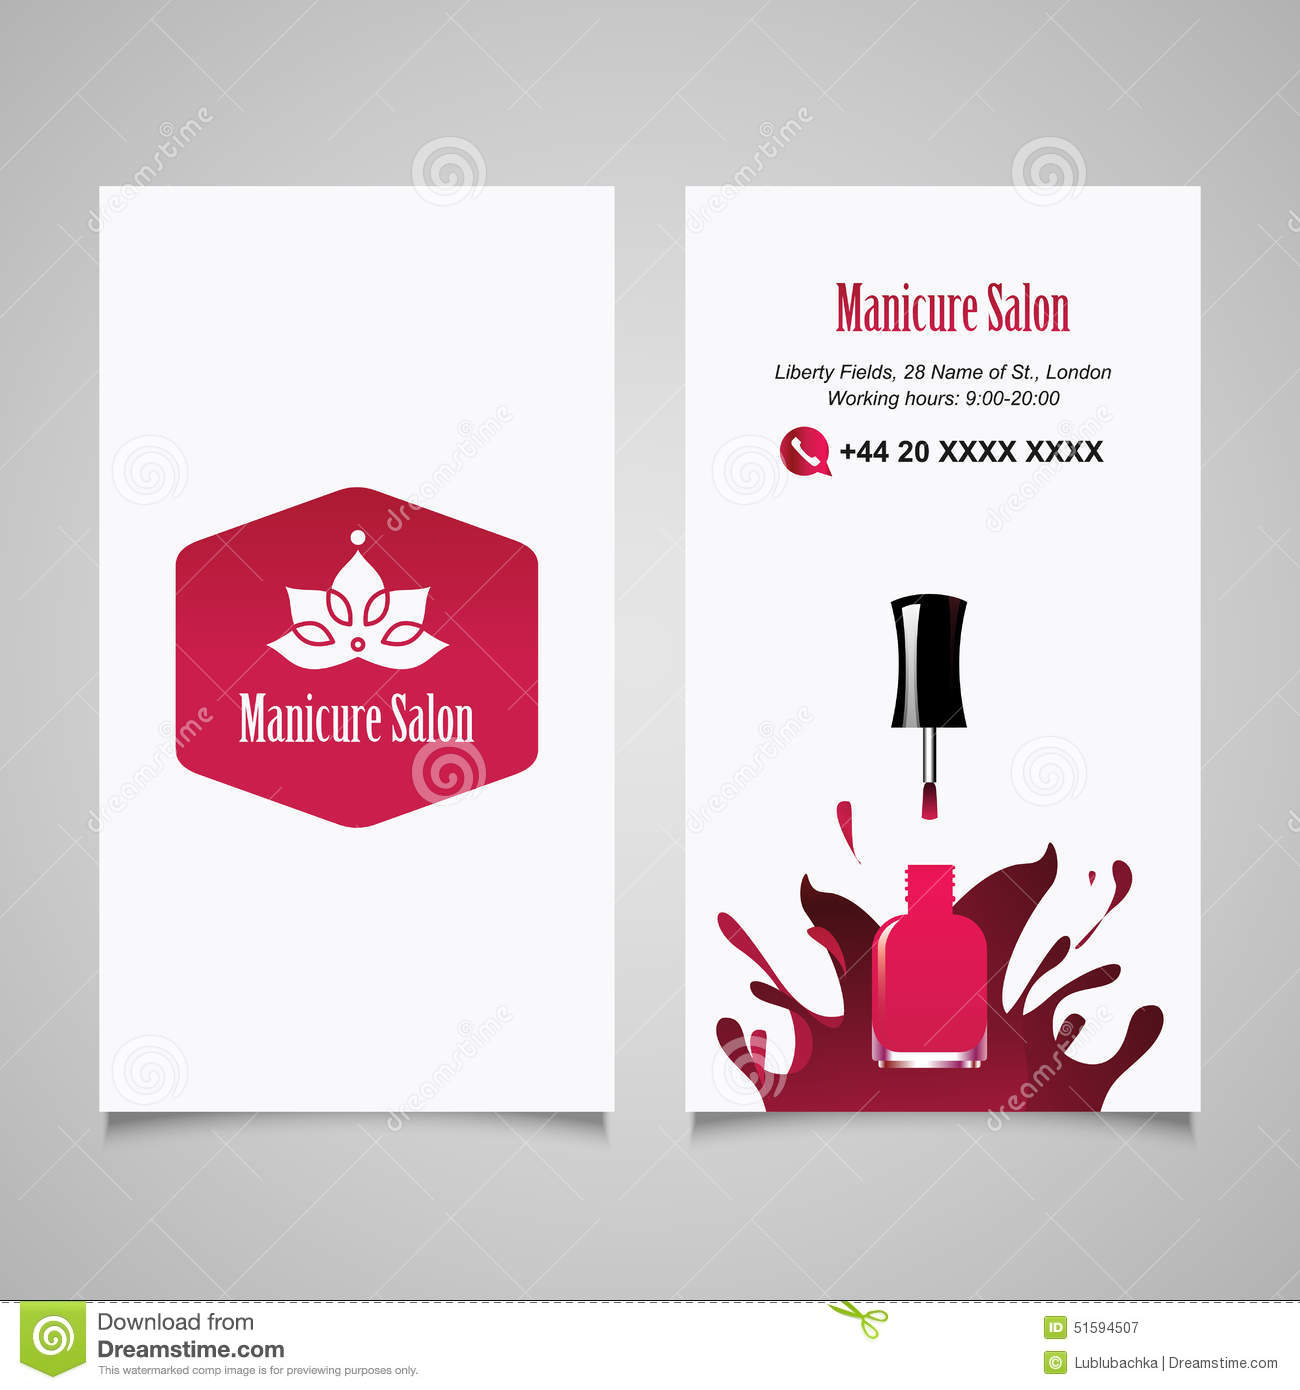 Manicure salon business card vector design templates set stock manicure salon business card vector design templates set royalty free vector reheart Choice Image